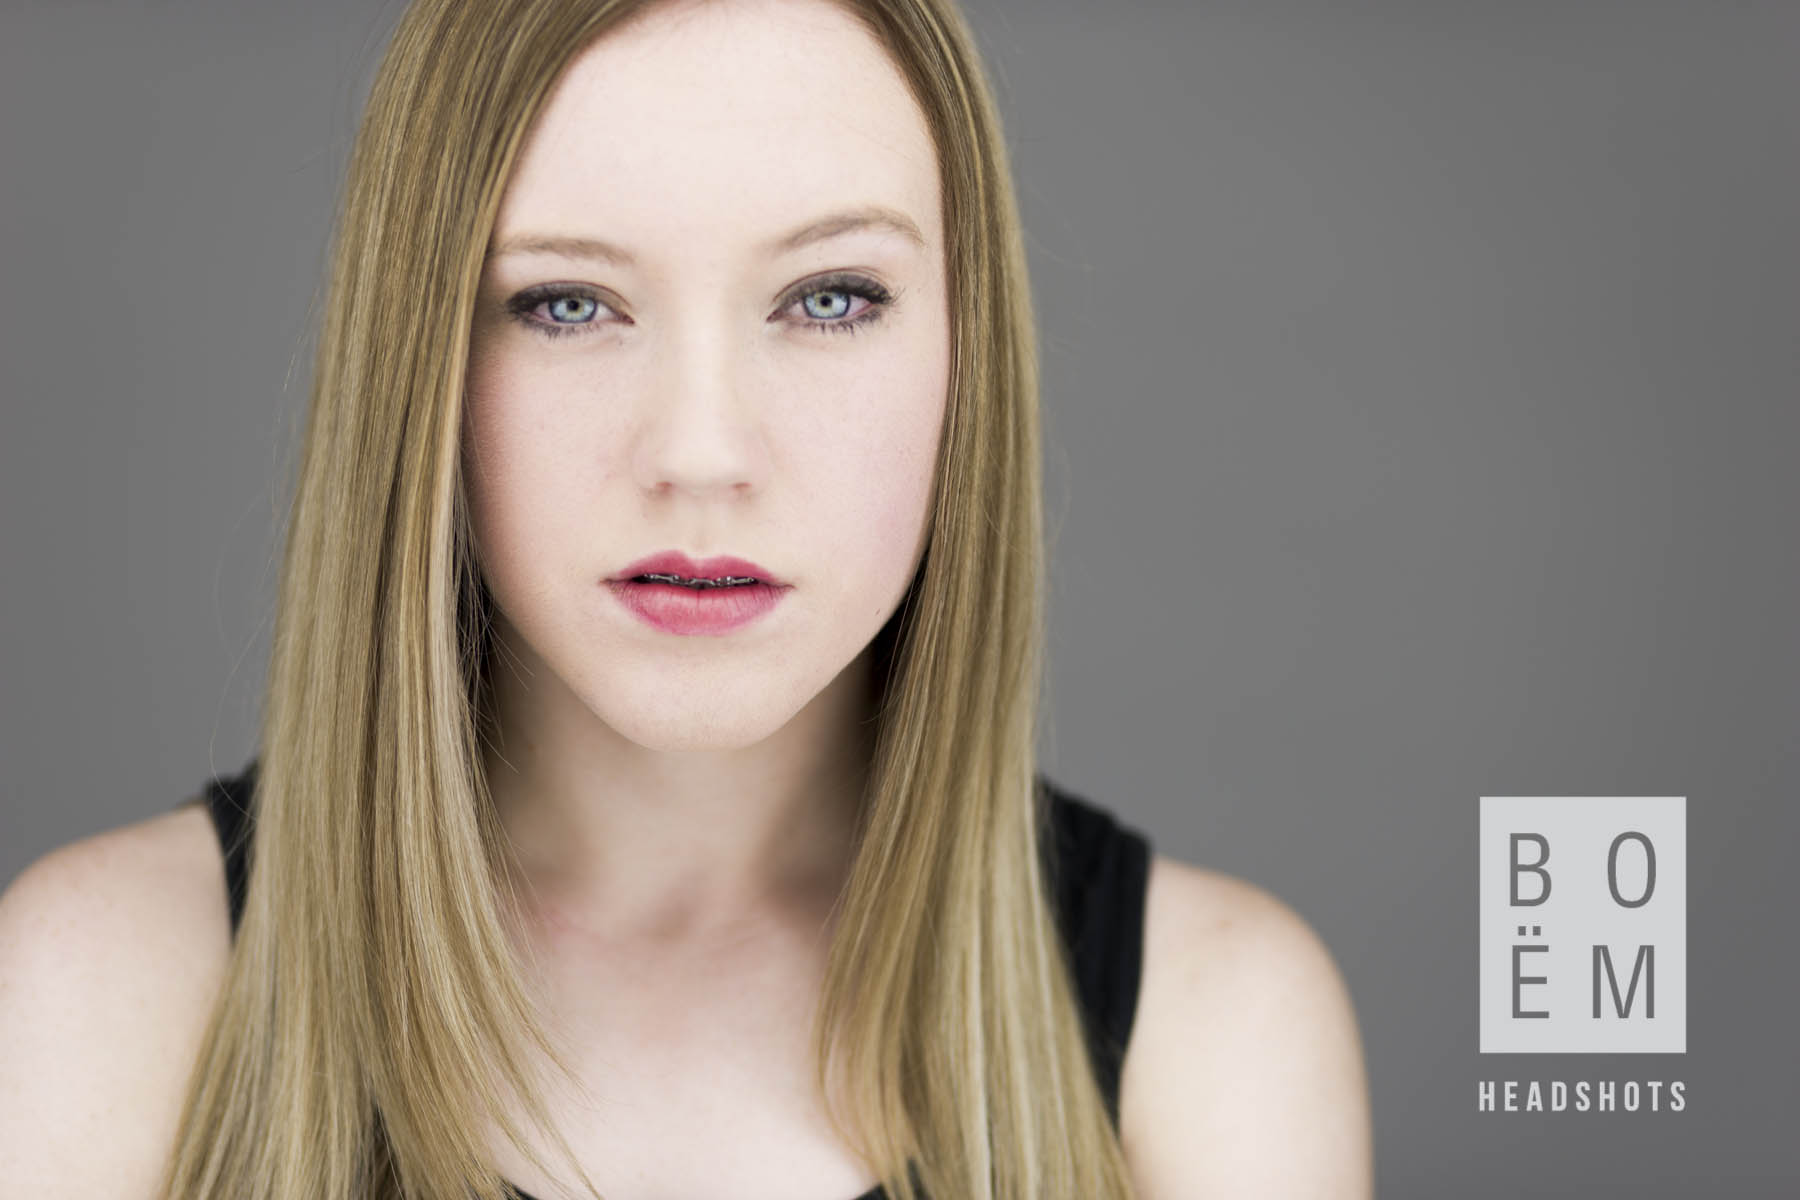 A sneaky preview at Tanysha's headshot session this week.